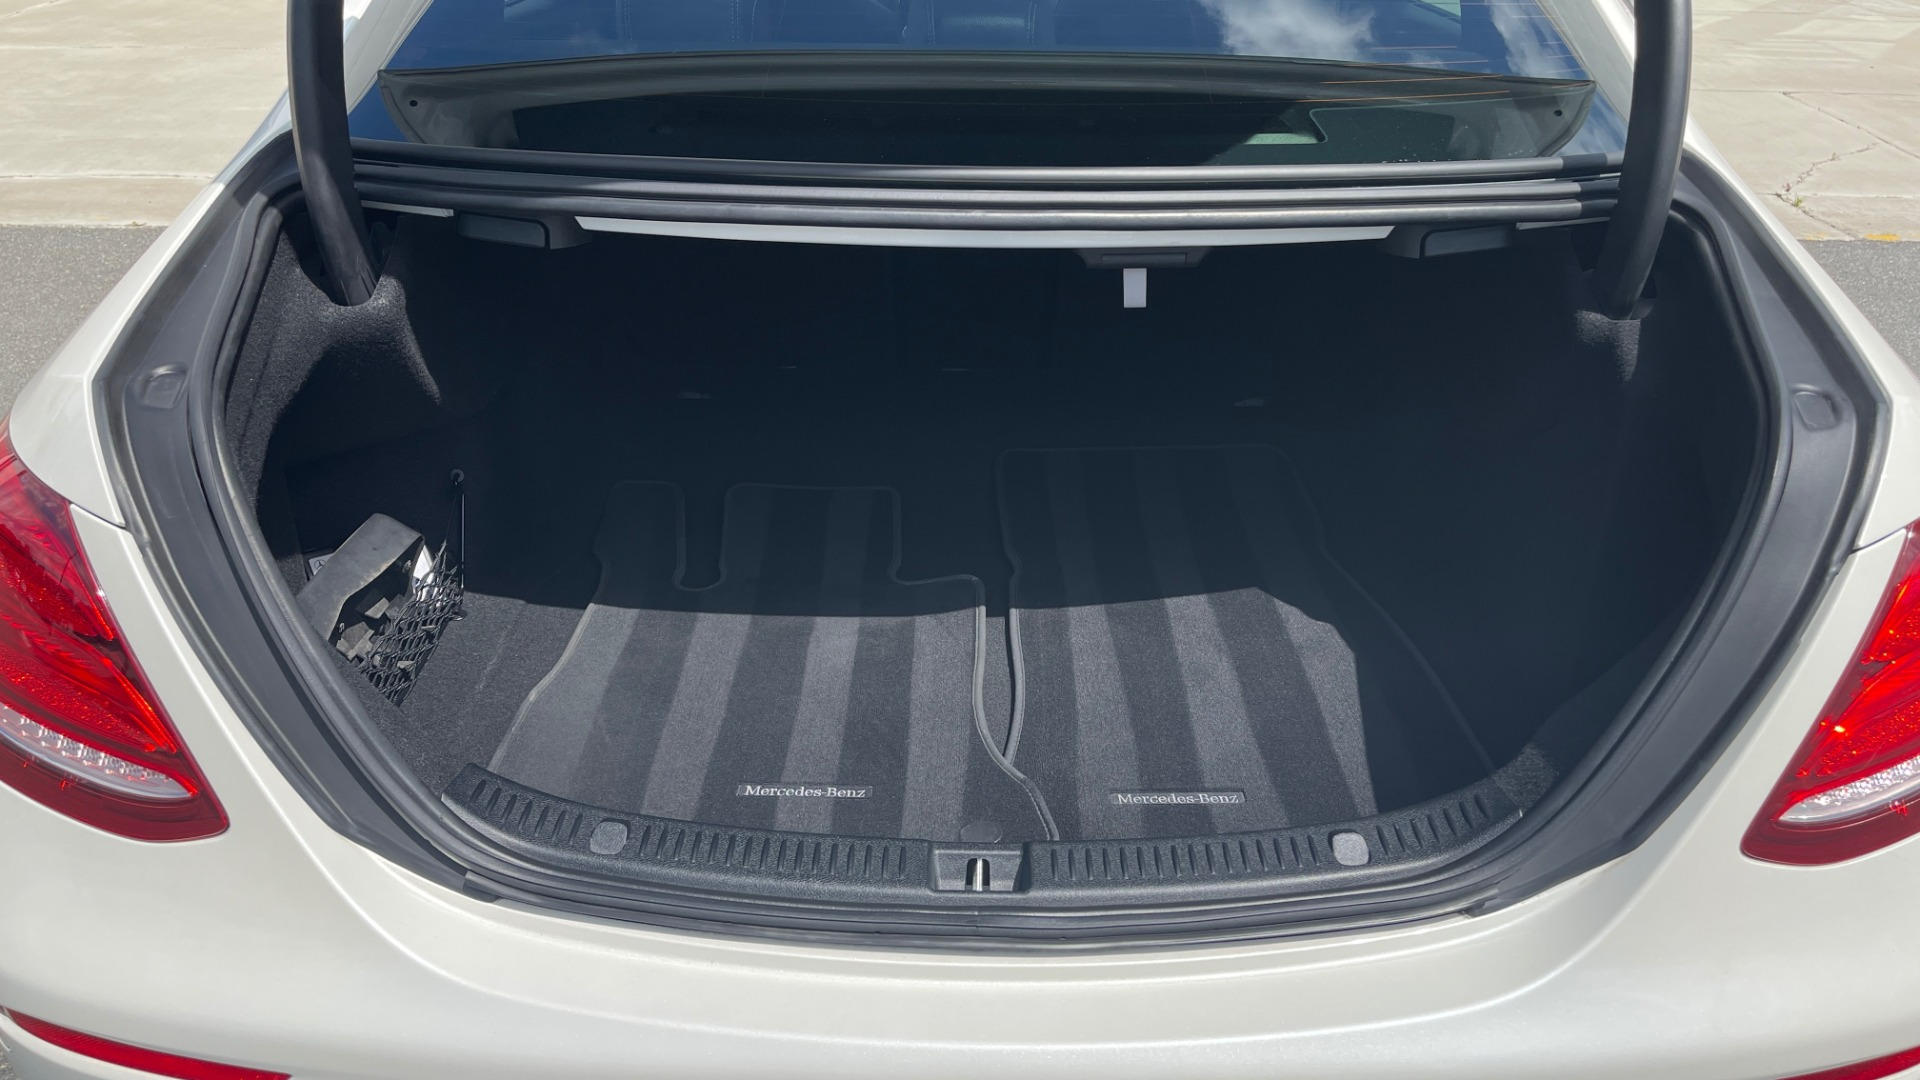 Used 2018 Mercedes-Benz E-CLASS E 300 PREMIUM / NIGHT PKG / PANO-ROOF / BURMESTER / REARVIEW for sale $42,399 at Formula Imports in Charlotte NC 28227 20